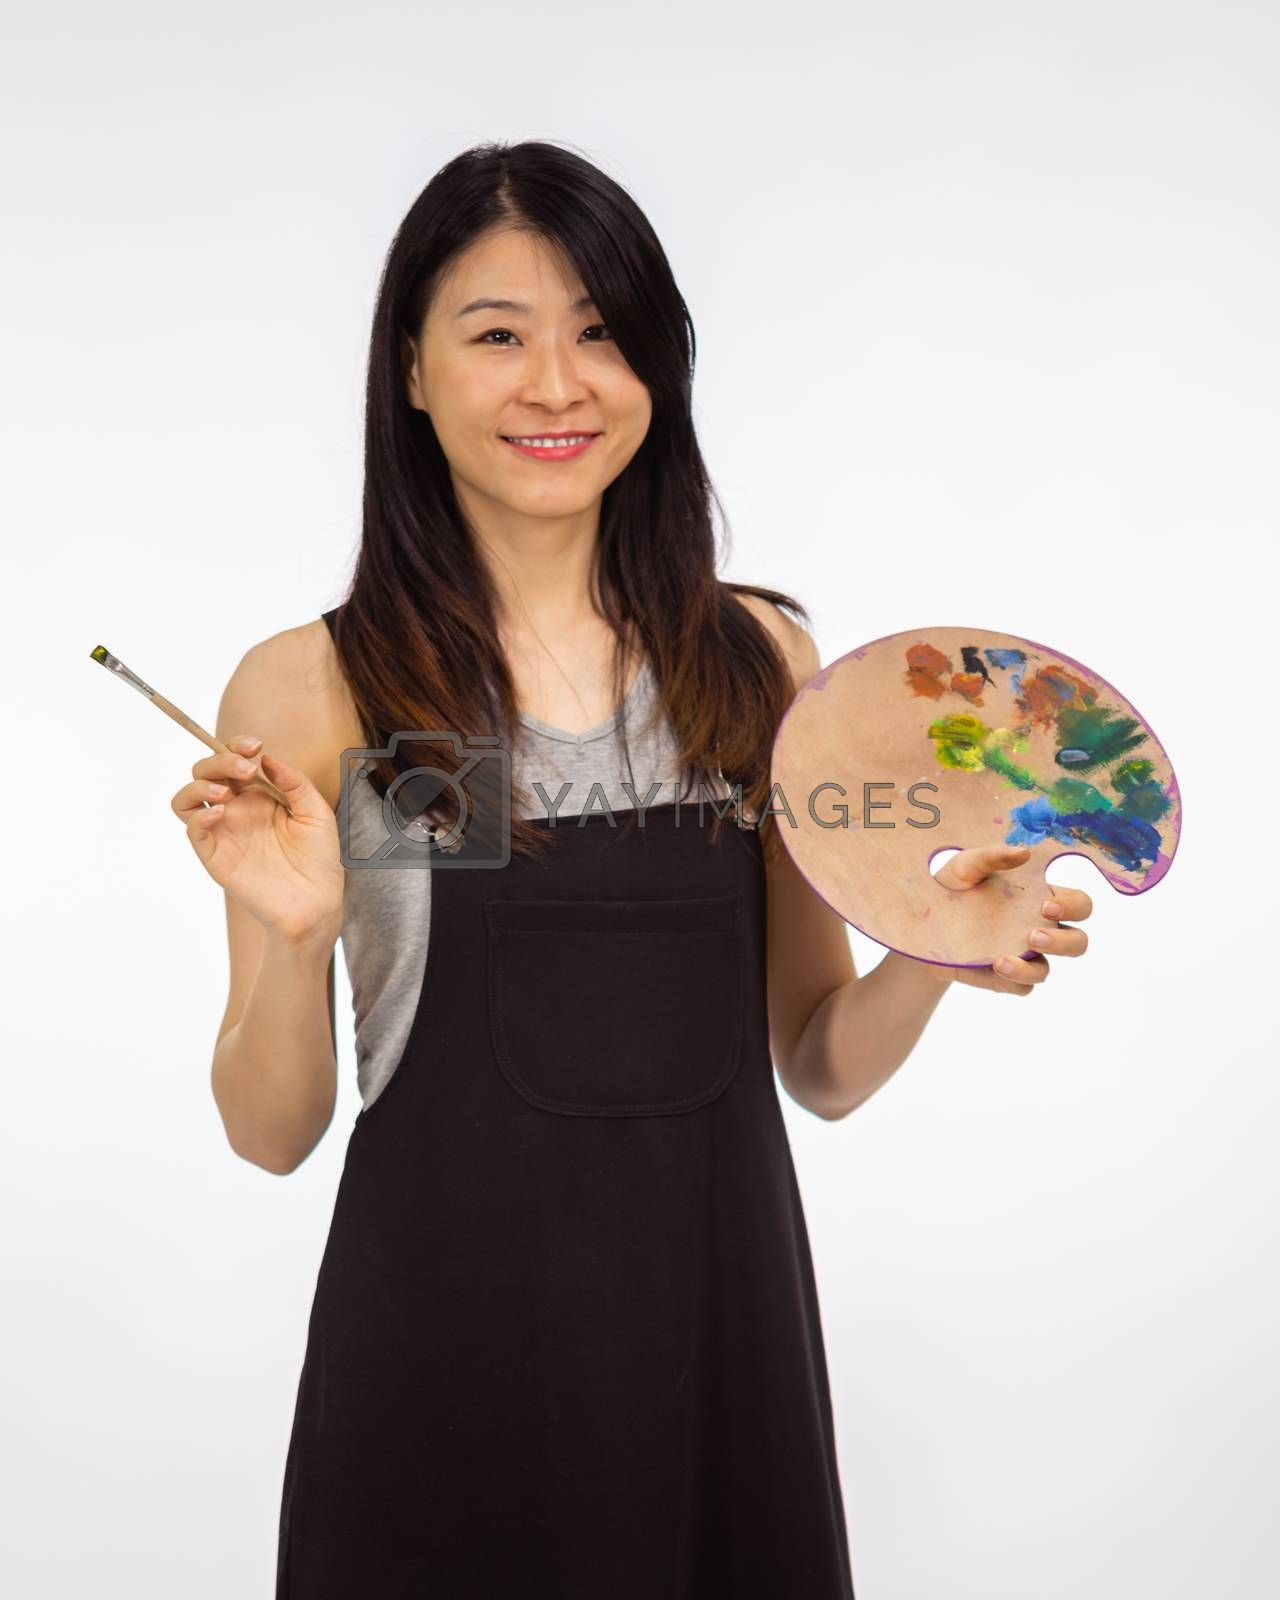 Artist holding painting palette and brush